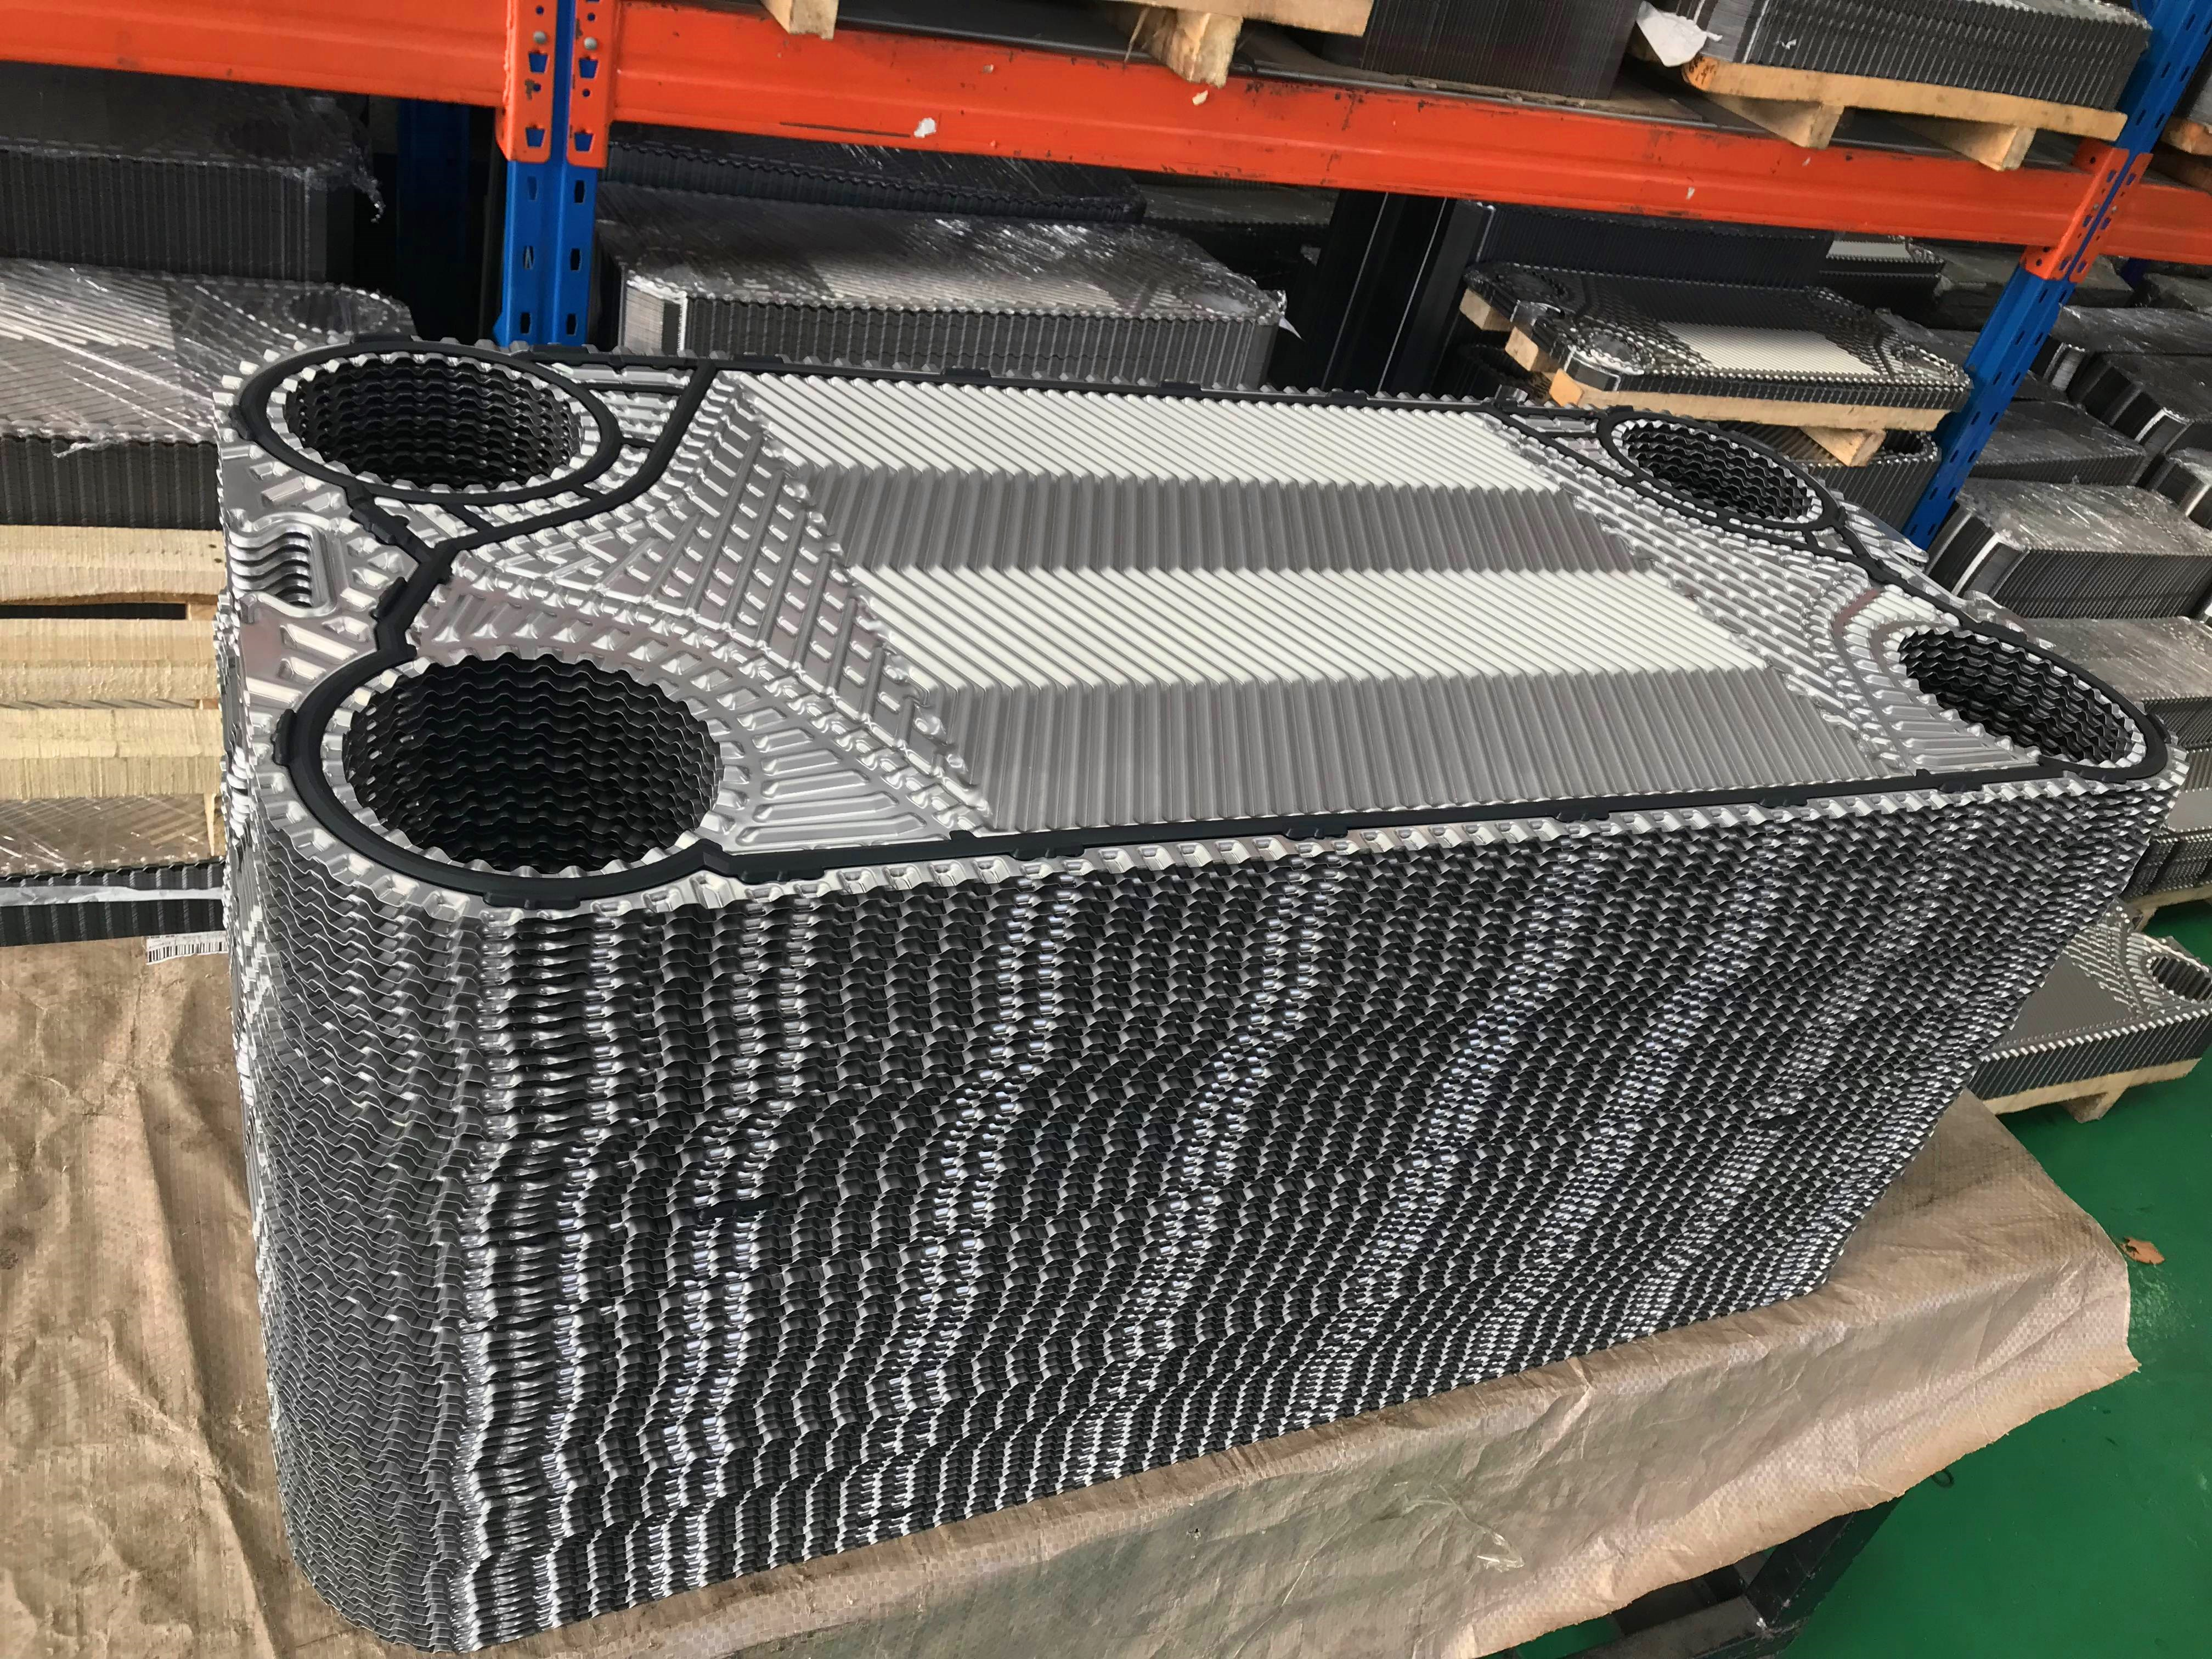 What is the difference between the corrugated herringbone and the horizontal corrugation on the plate heat exchanger